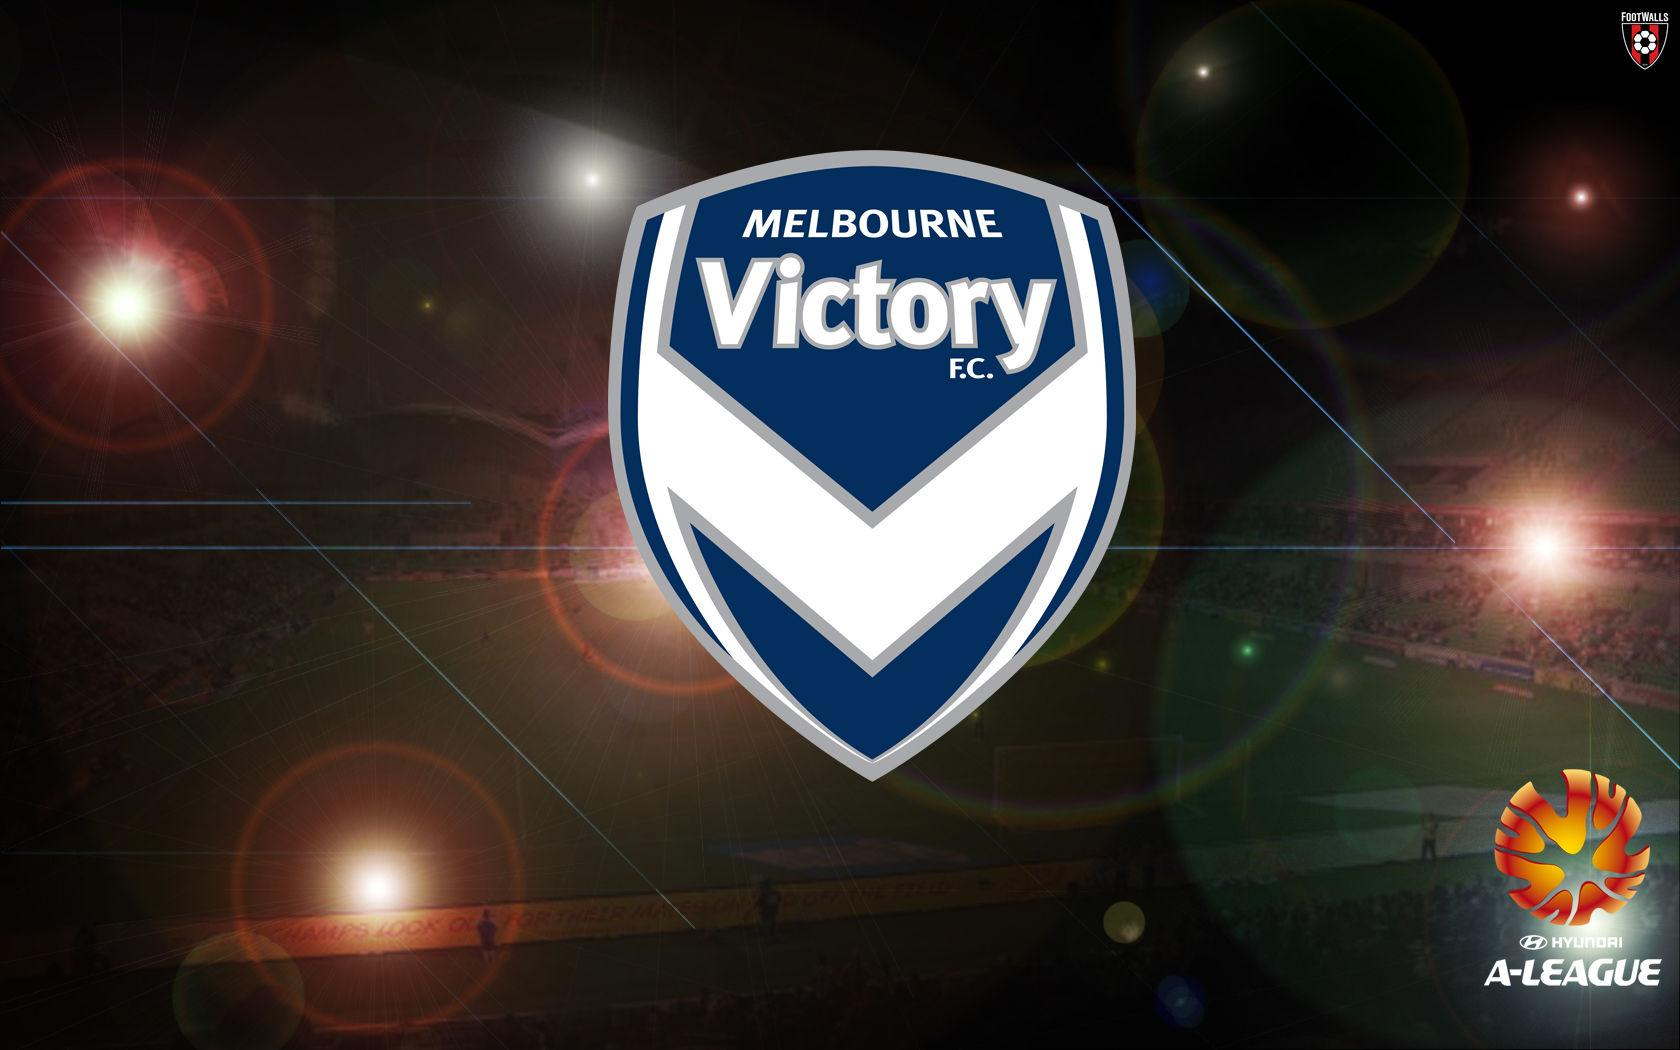 Melbourne Victory Wallpaper #4 - Football Wallpapers